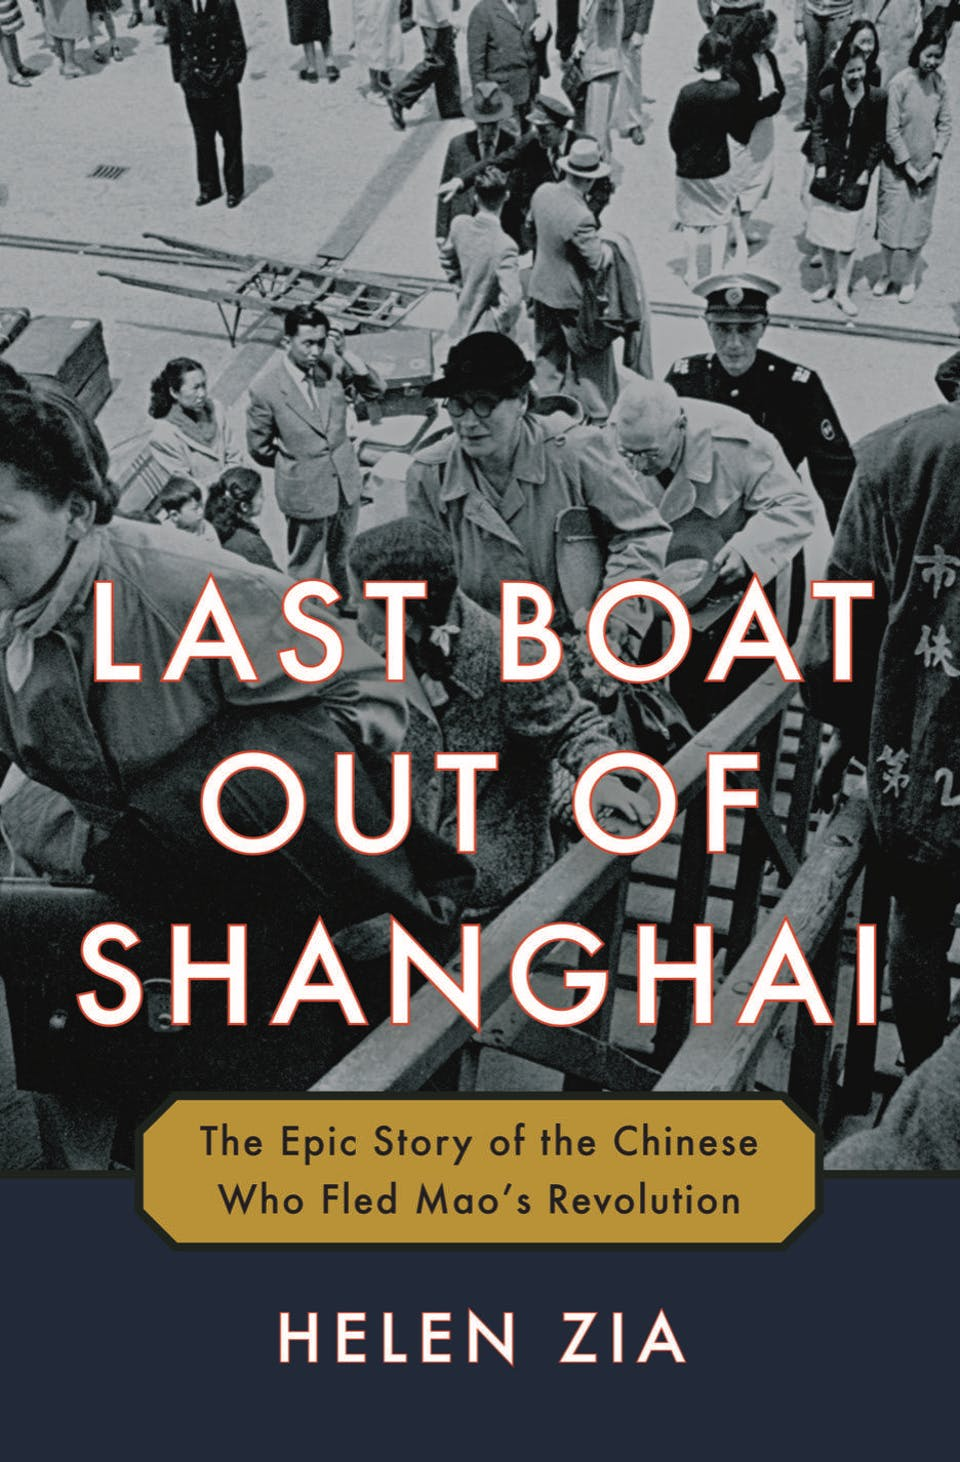 Book Talk: Last Boat out of Shanghai - Helen Zia